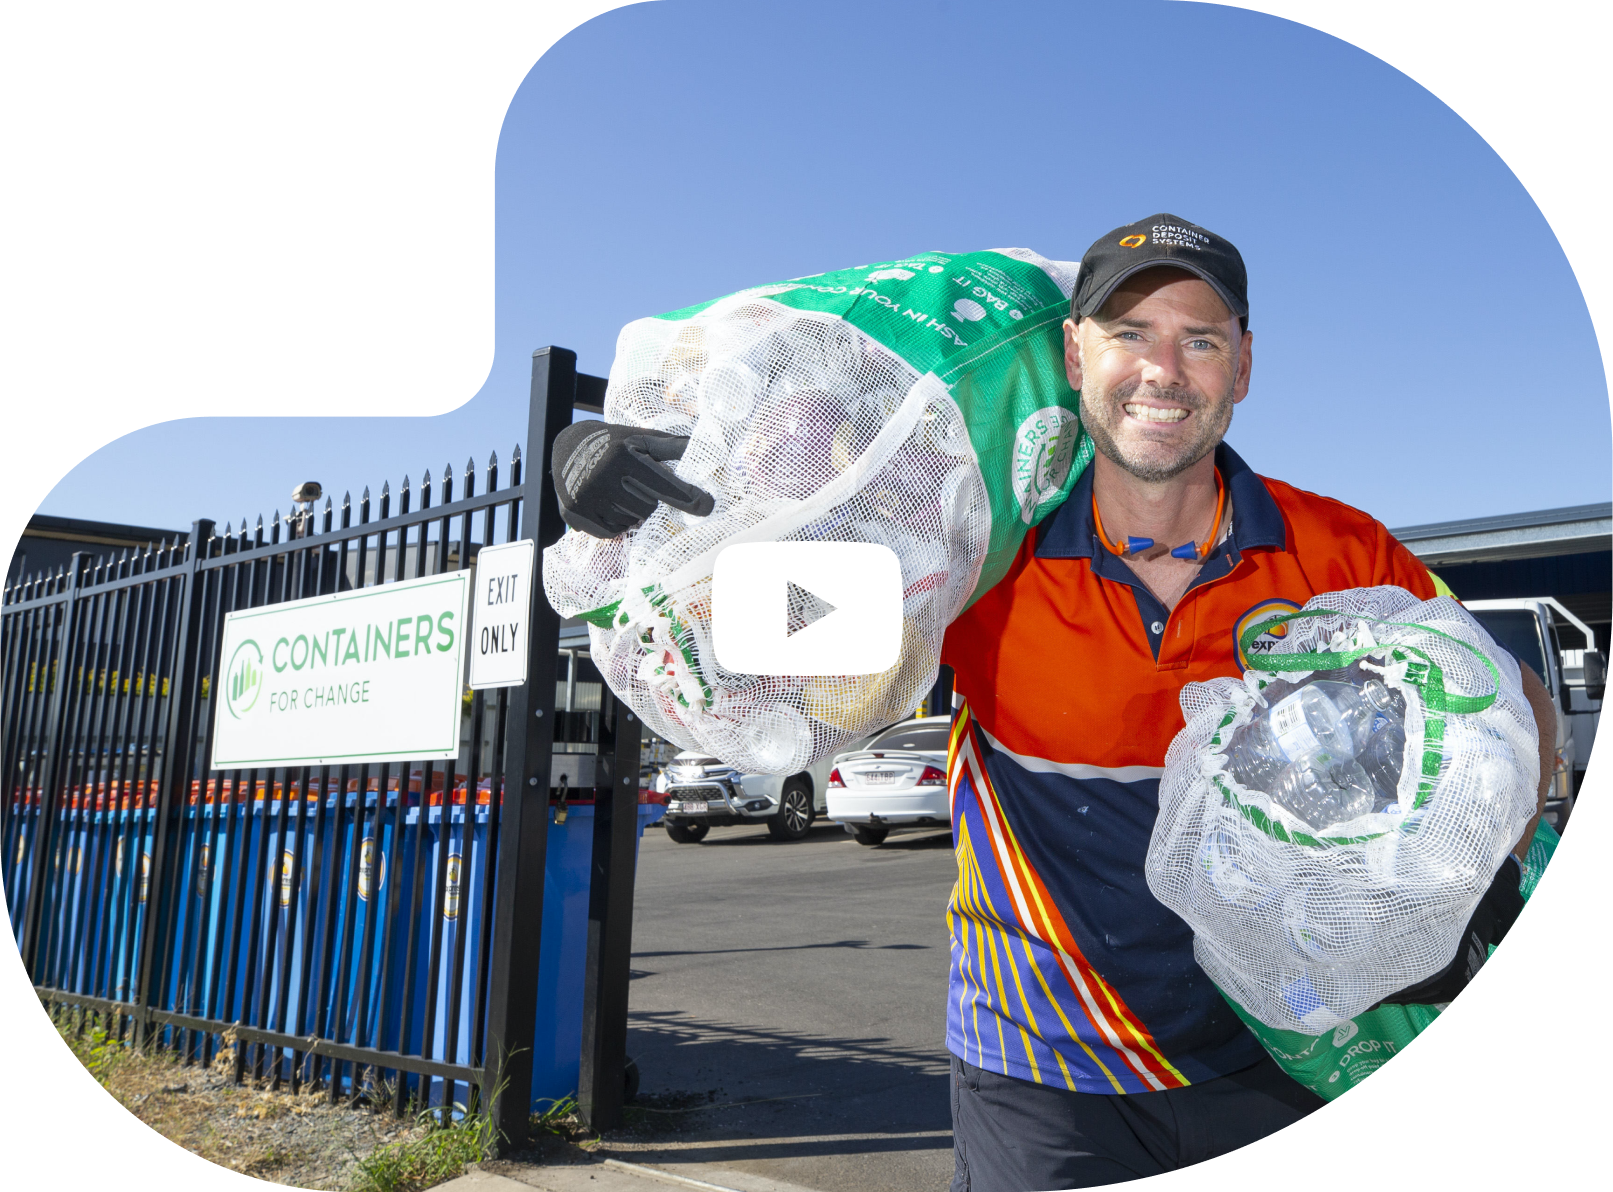 Creating a recycling scheme to keep Queensland beautiful